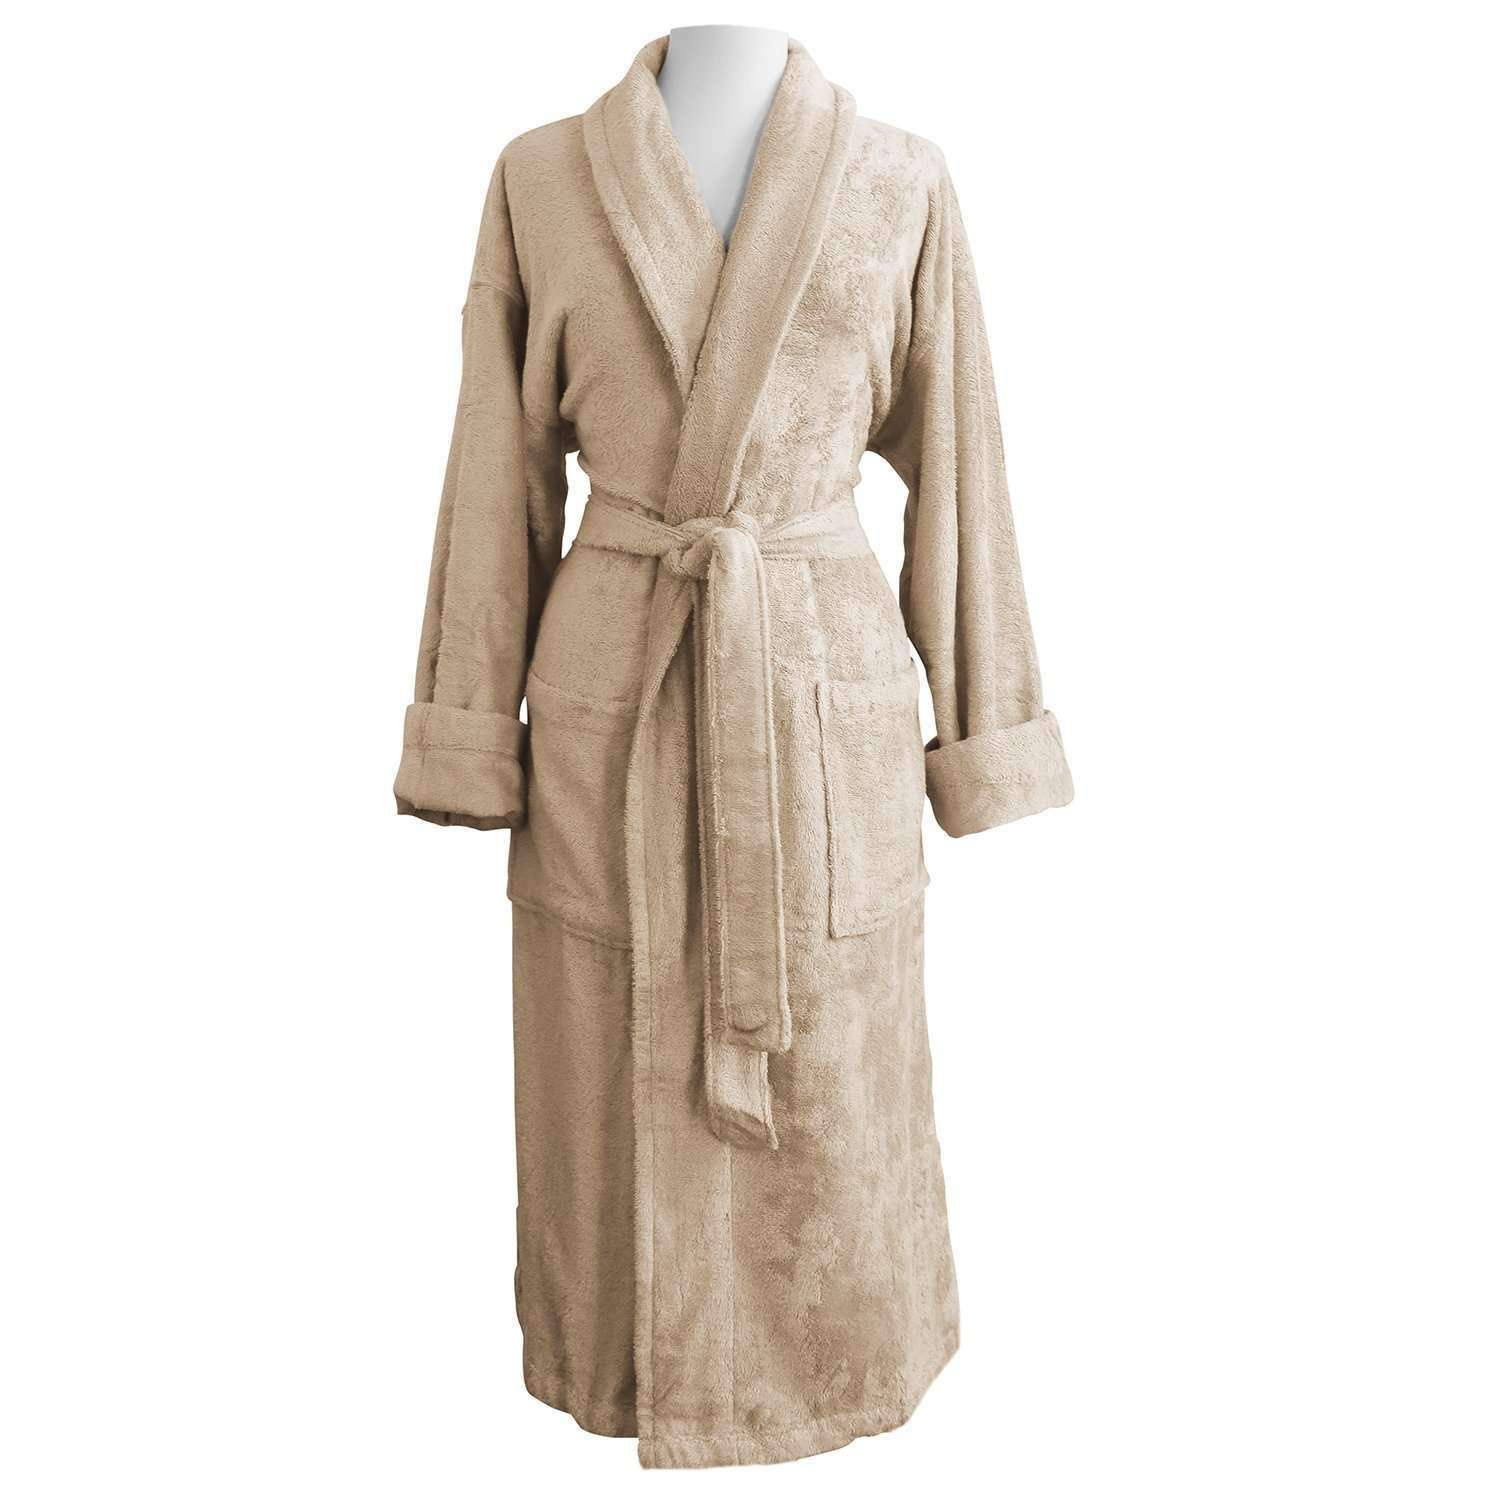 Anini Bamboo and Cotton Spa Bathrobe - Luxor Linens